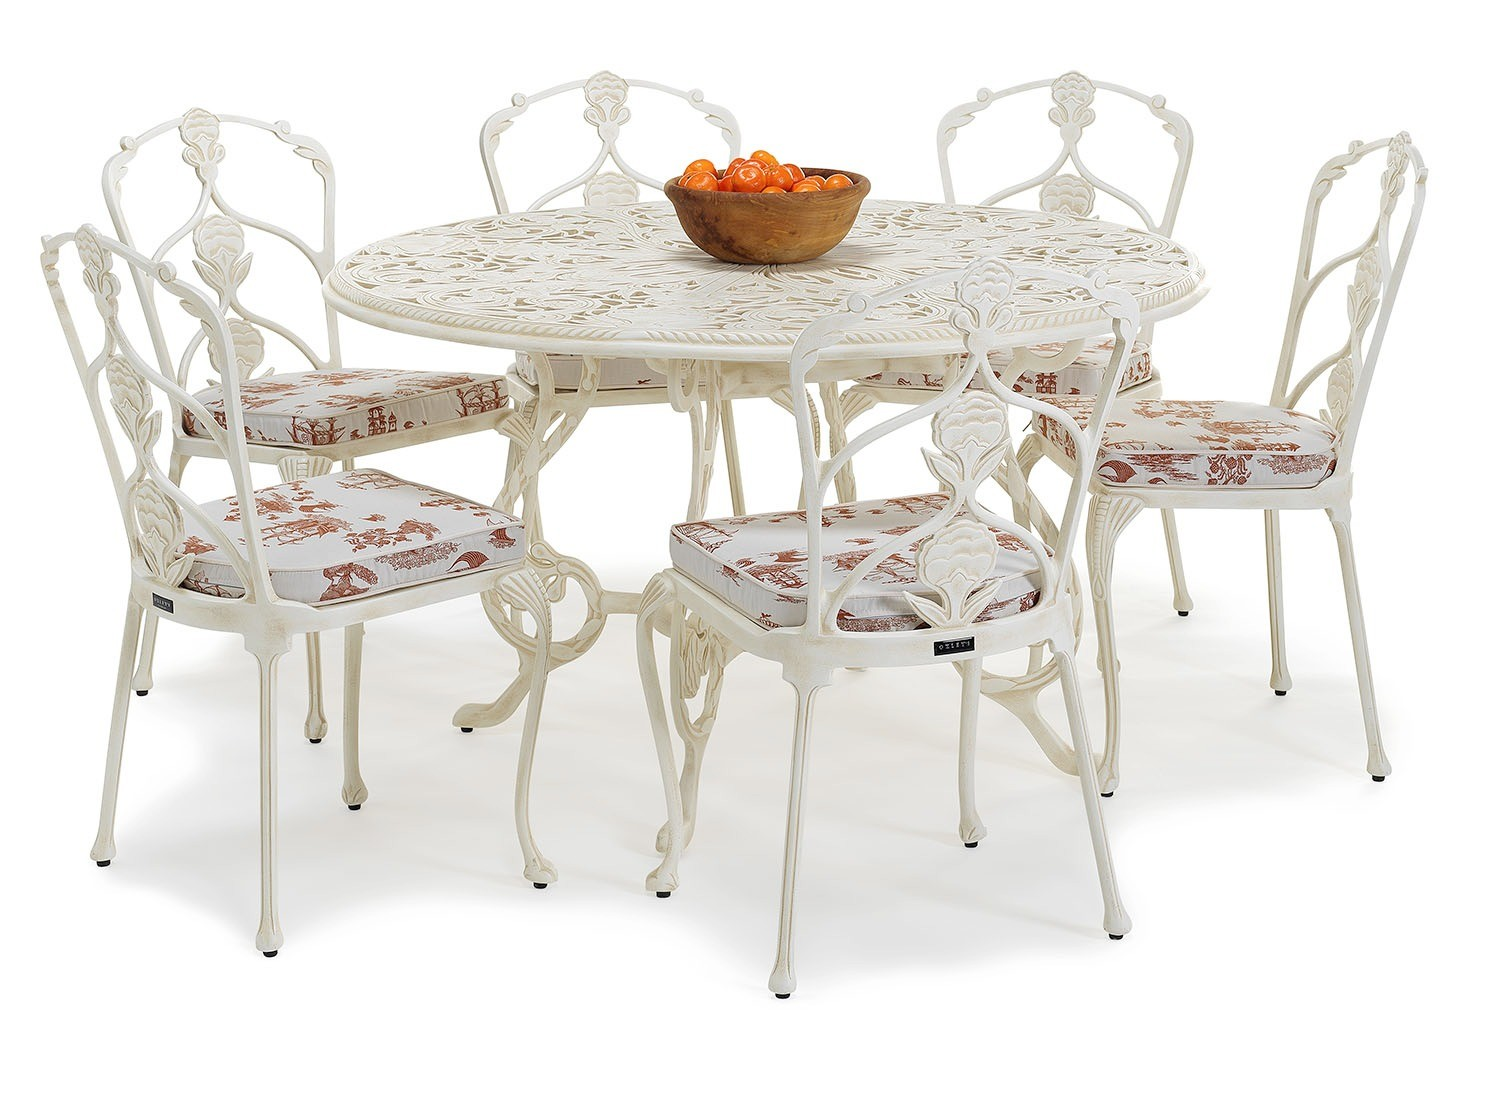 Barrington metal outdoor dining set